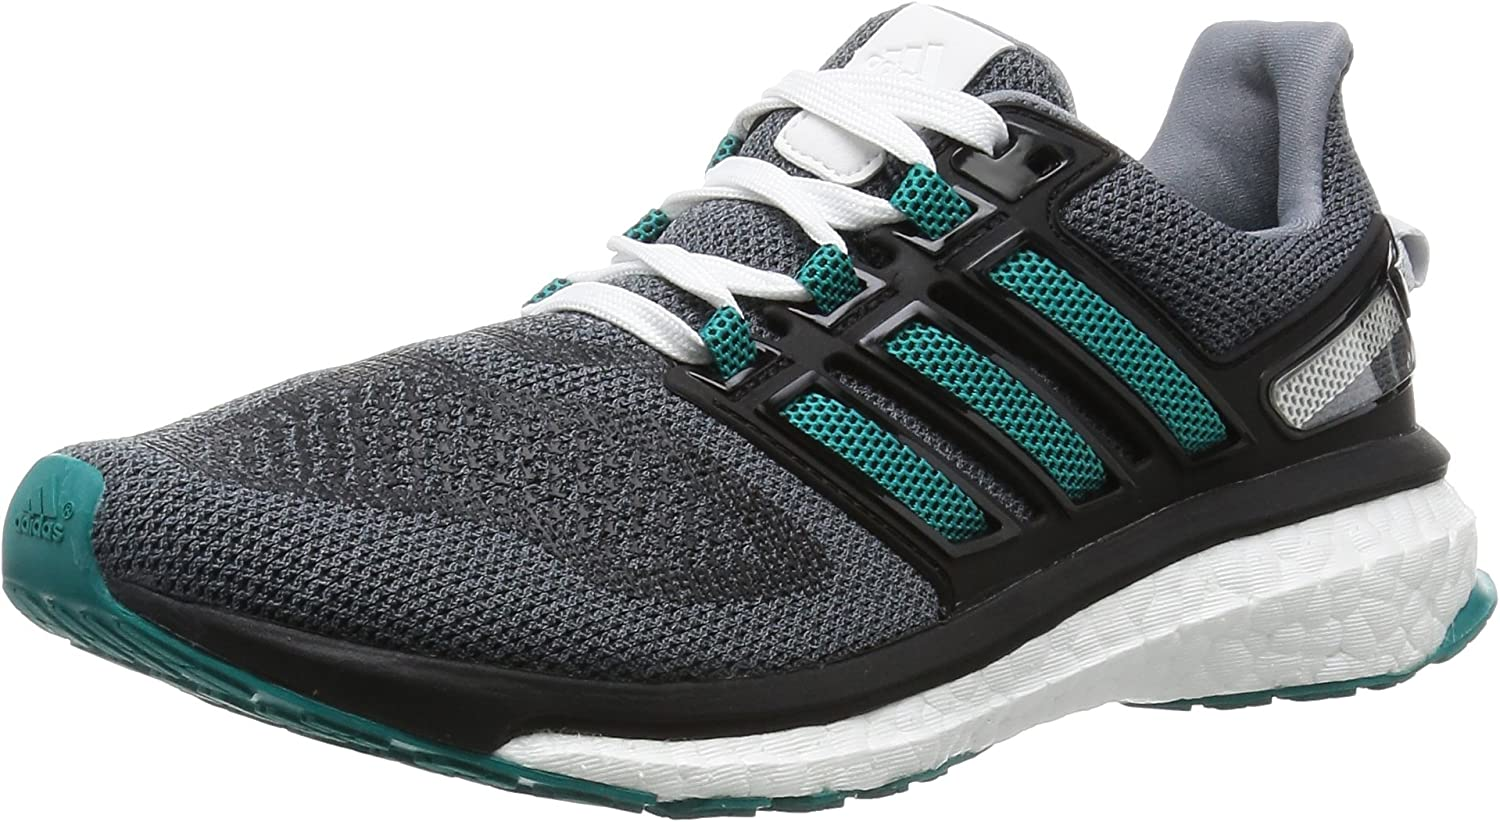 adidas Bargain Women's Energy Boost 3 Shoes Running 2021new shipping free shipping Lightweight Comfor